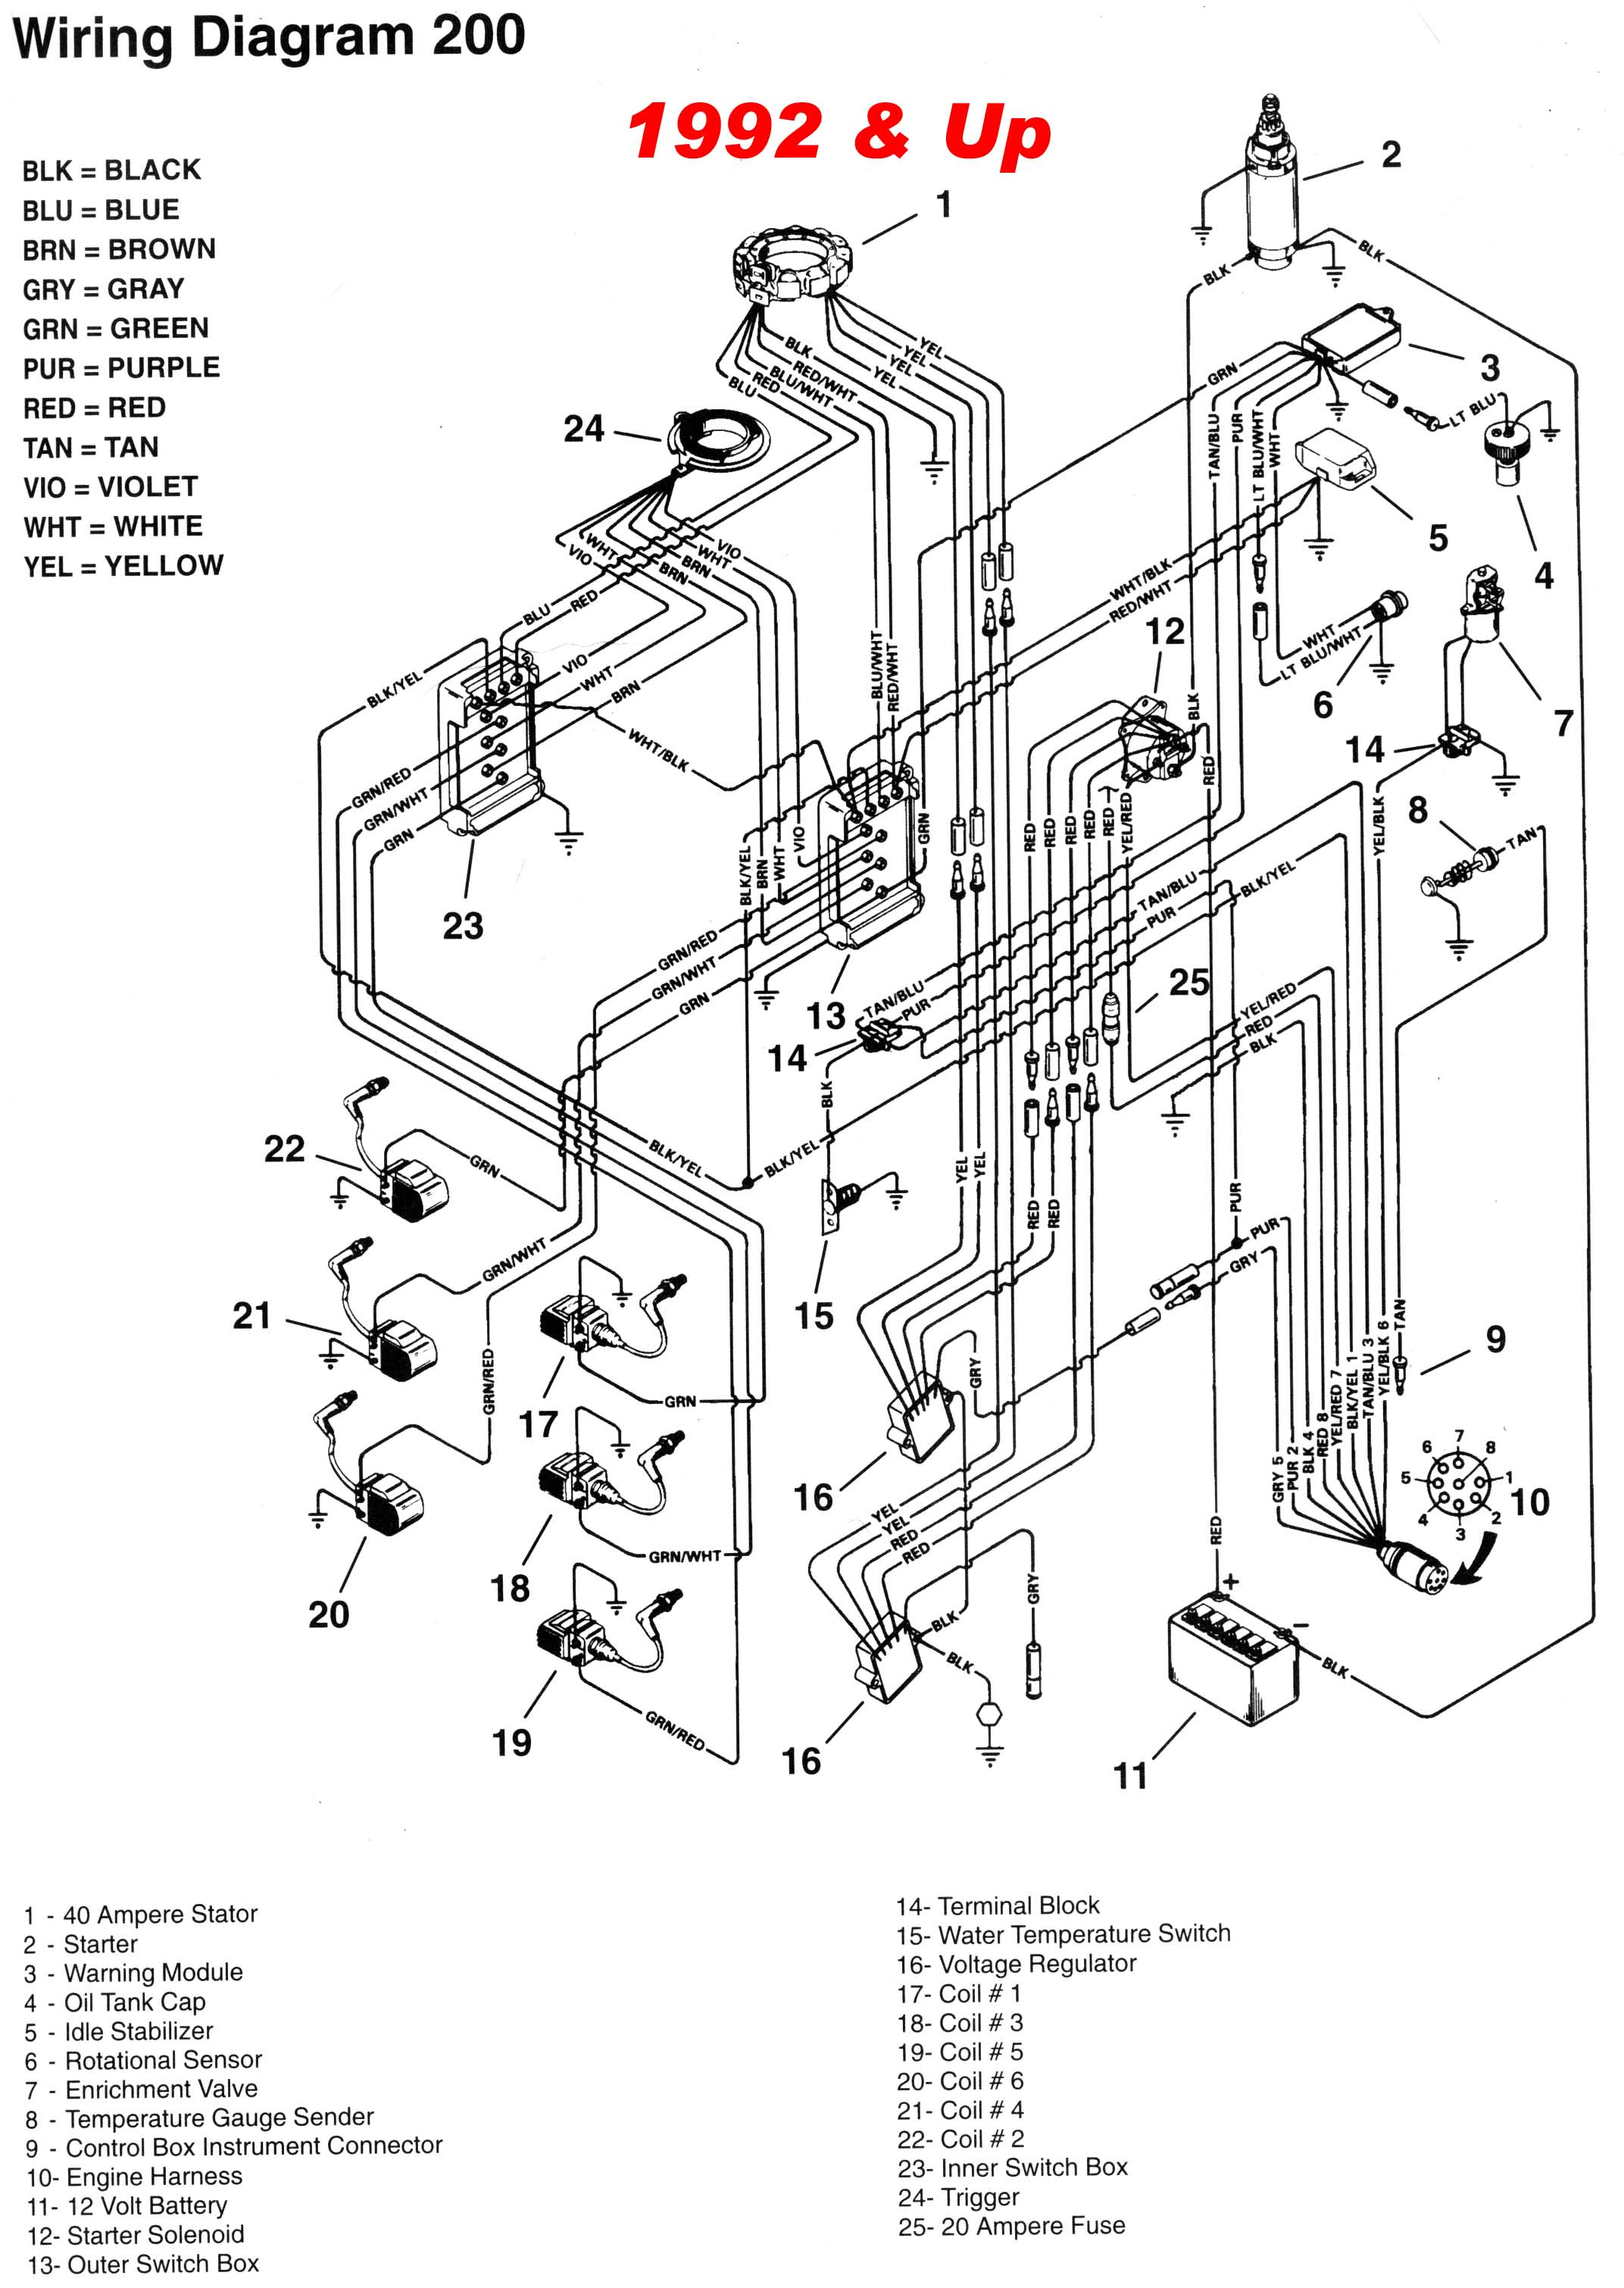 mercury_92up_200_wiring wiring diagram 2001 60 hp mercury outboard readingrat net yamaha ttr 225 wiring diagram at soozxer.org